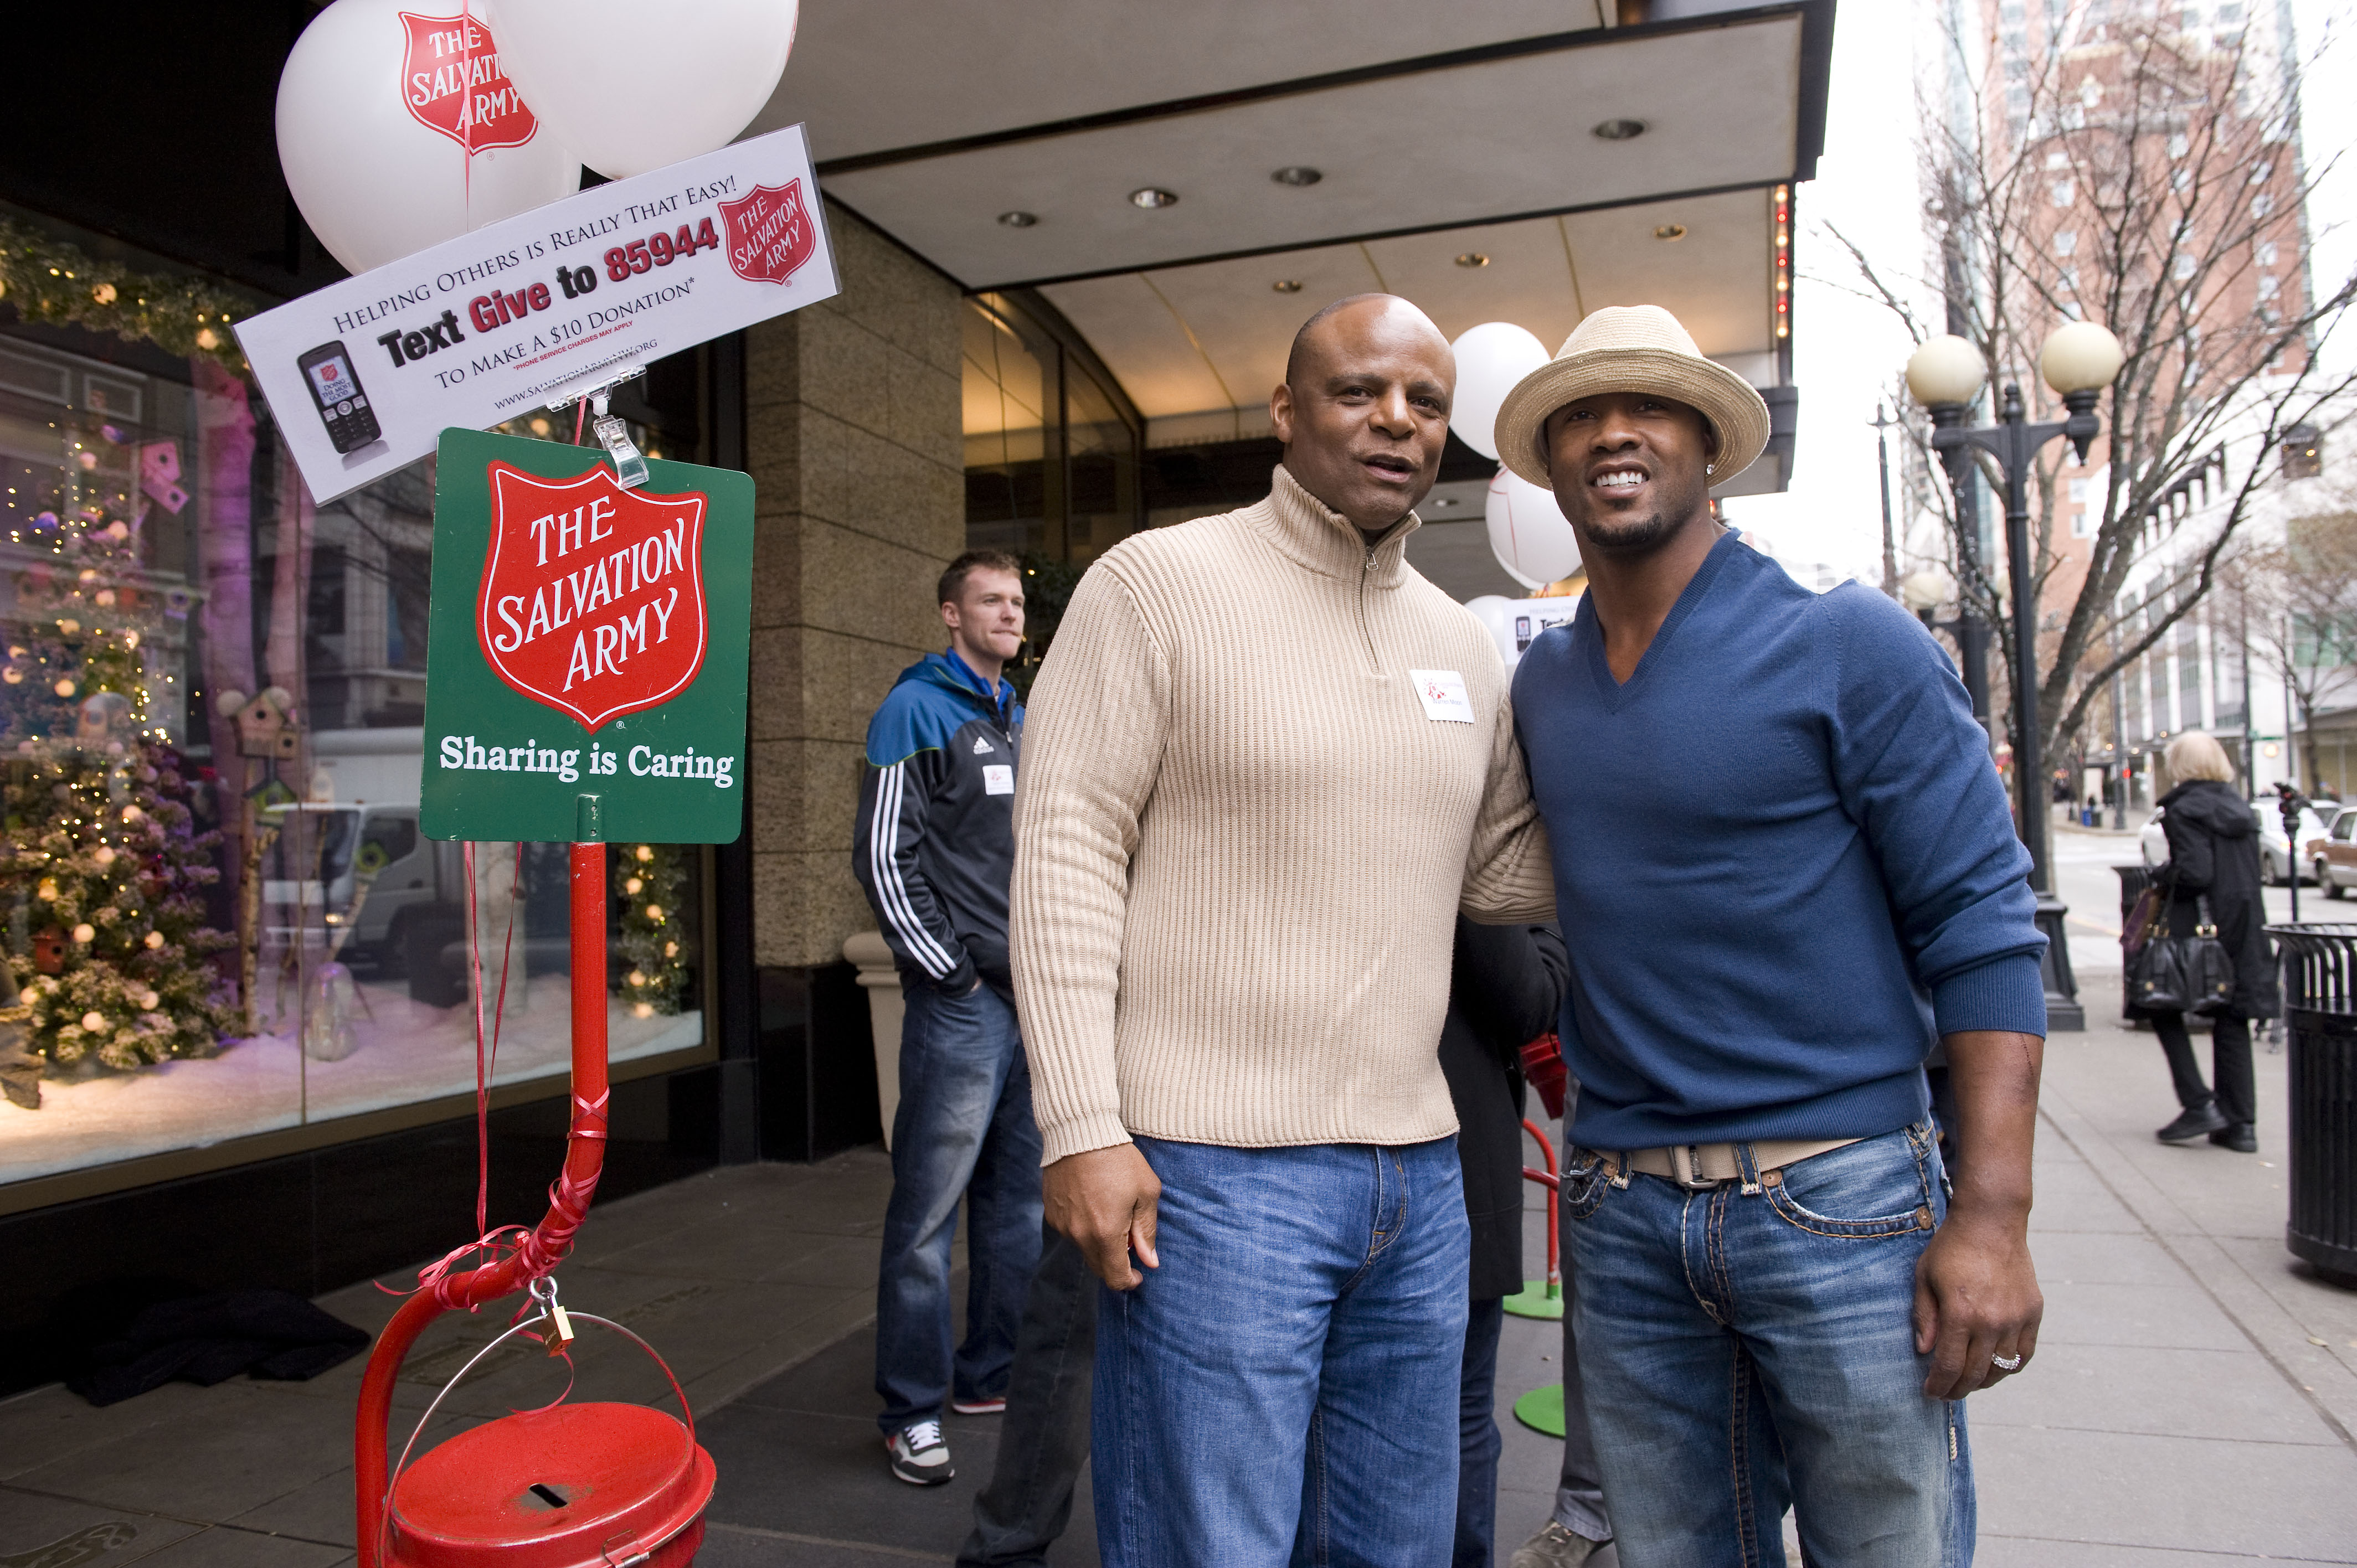 Seahawks broadcaster and former quarterback Warren Moon and current safety Lawyer Milloy pose outside of the downtown Nordstrom where they were bellringing for the Salvation Army during the lunch hour.